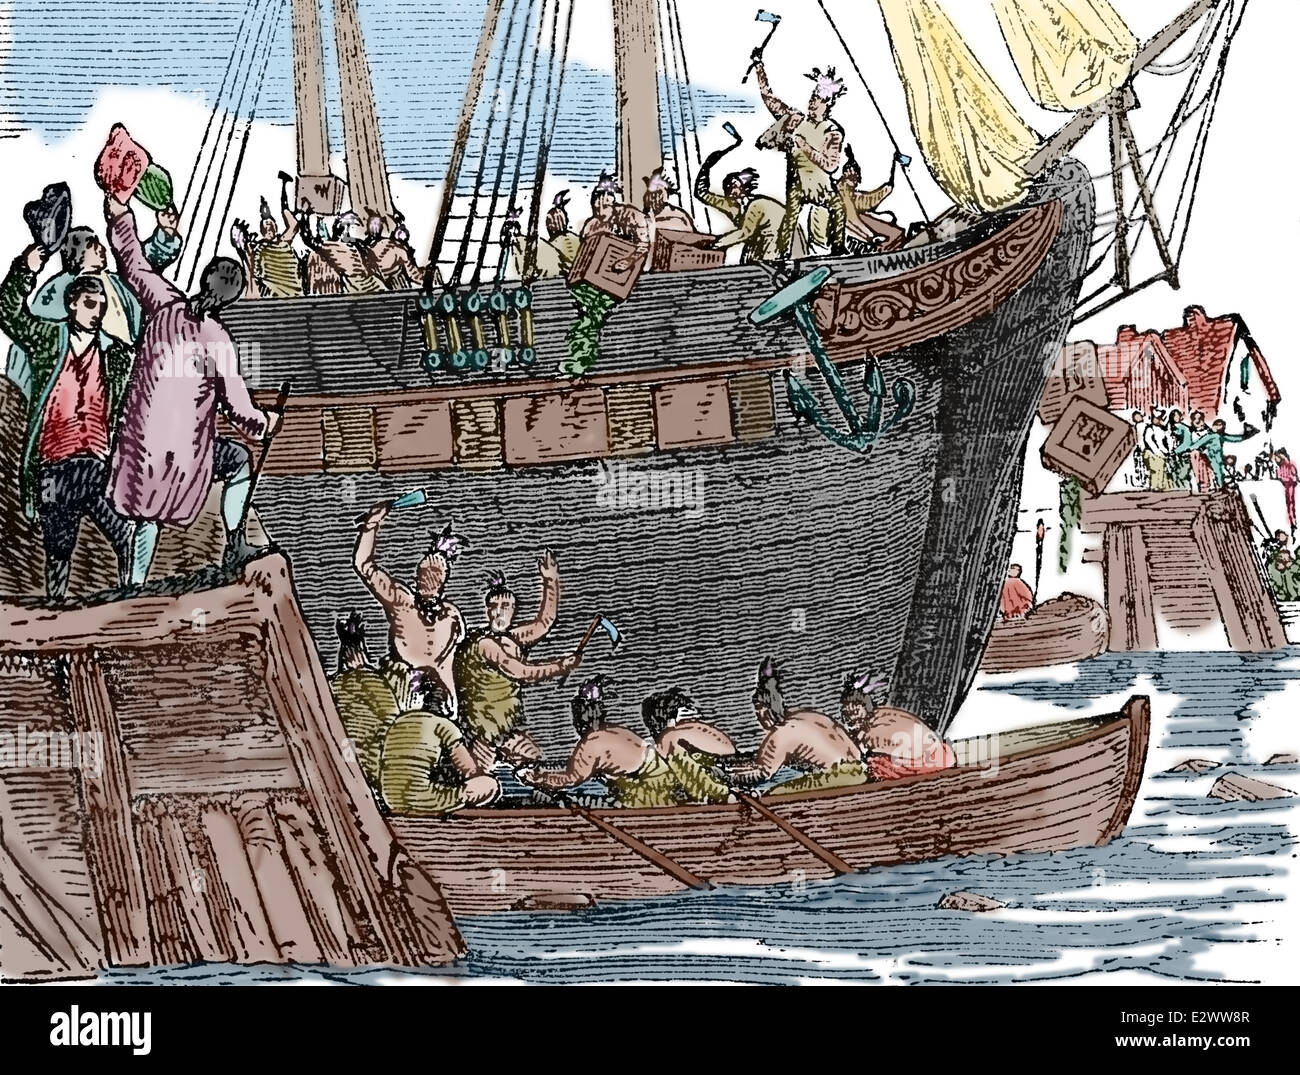 The Boston Tea Party 16 December 1773 History of the United